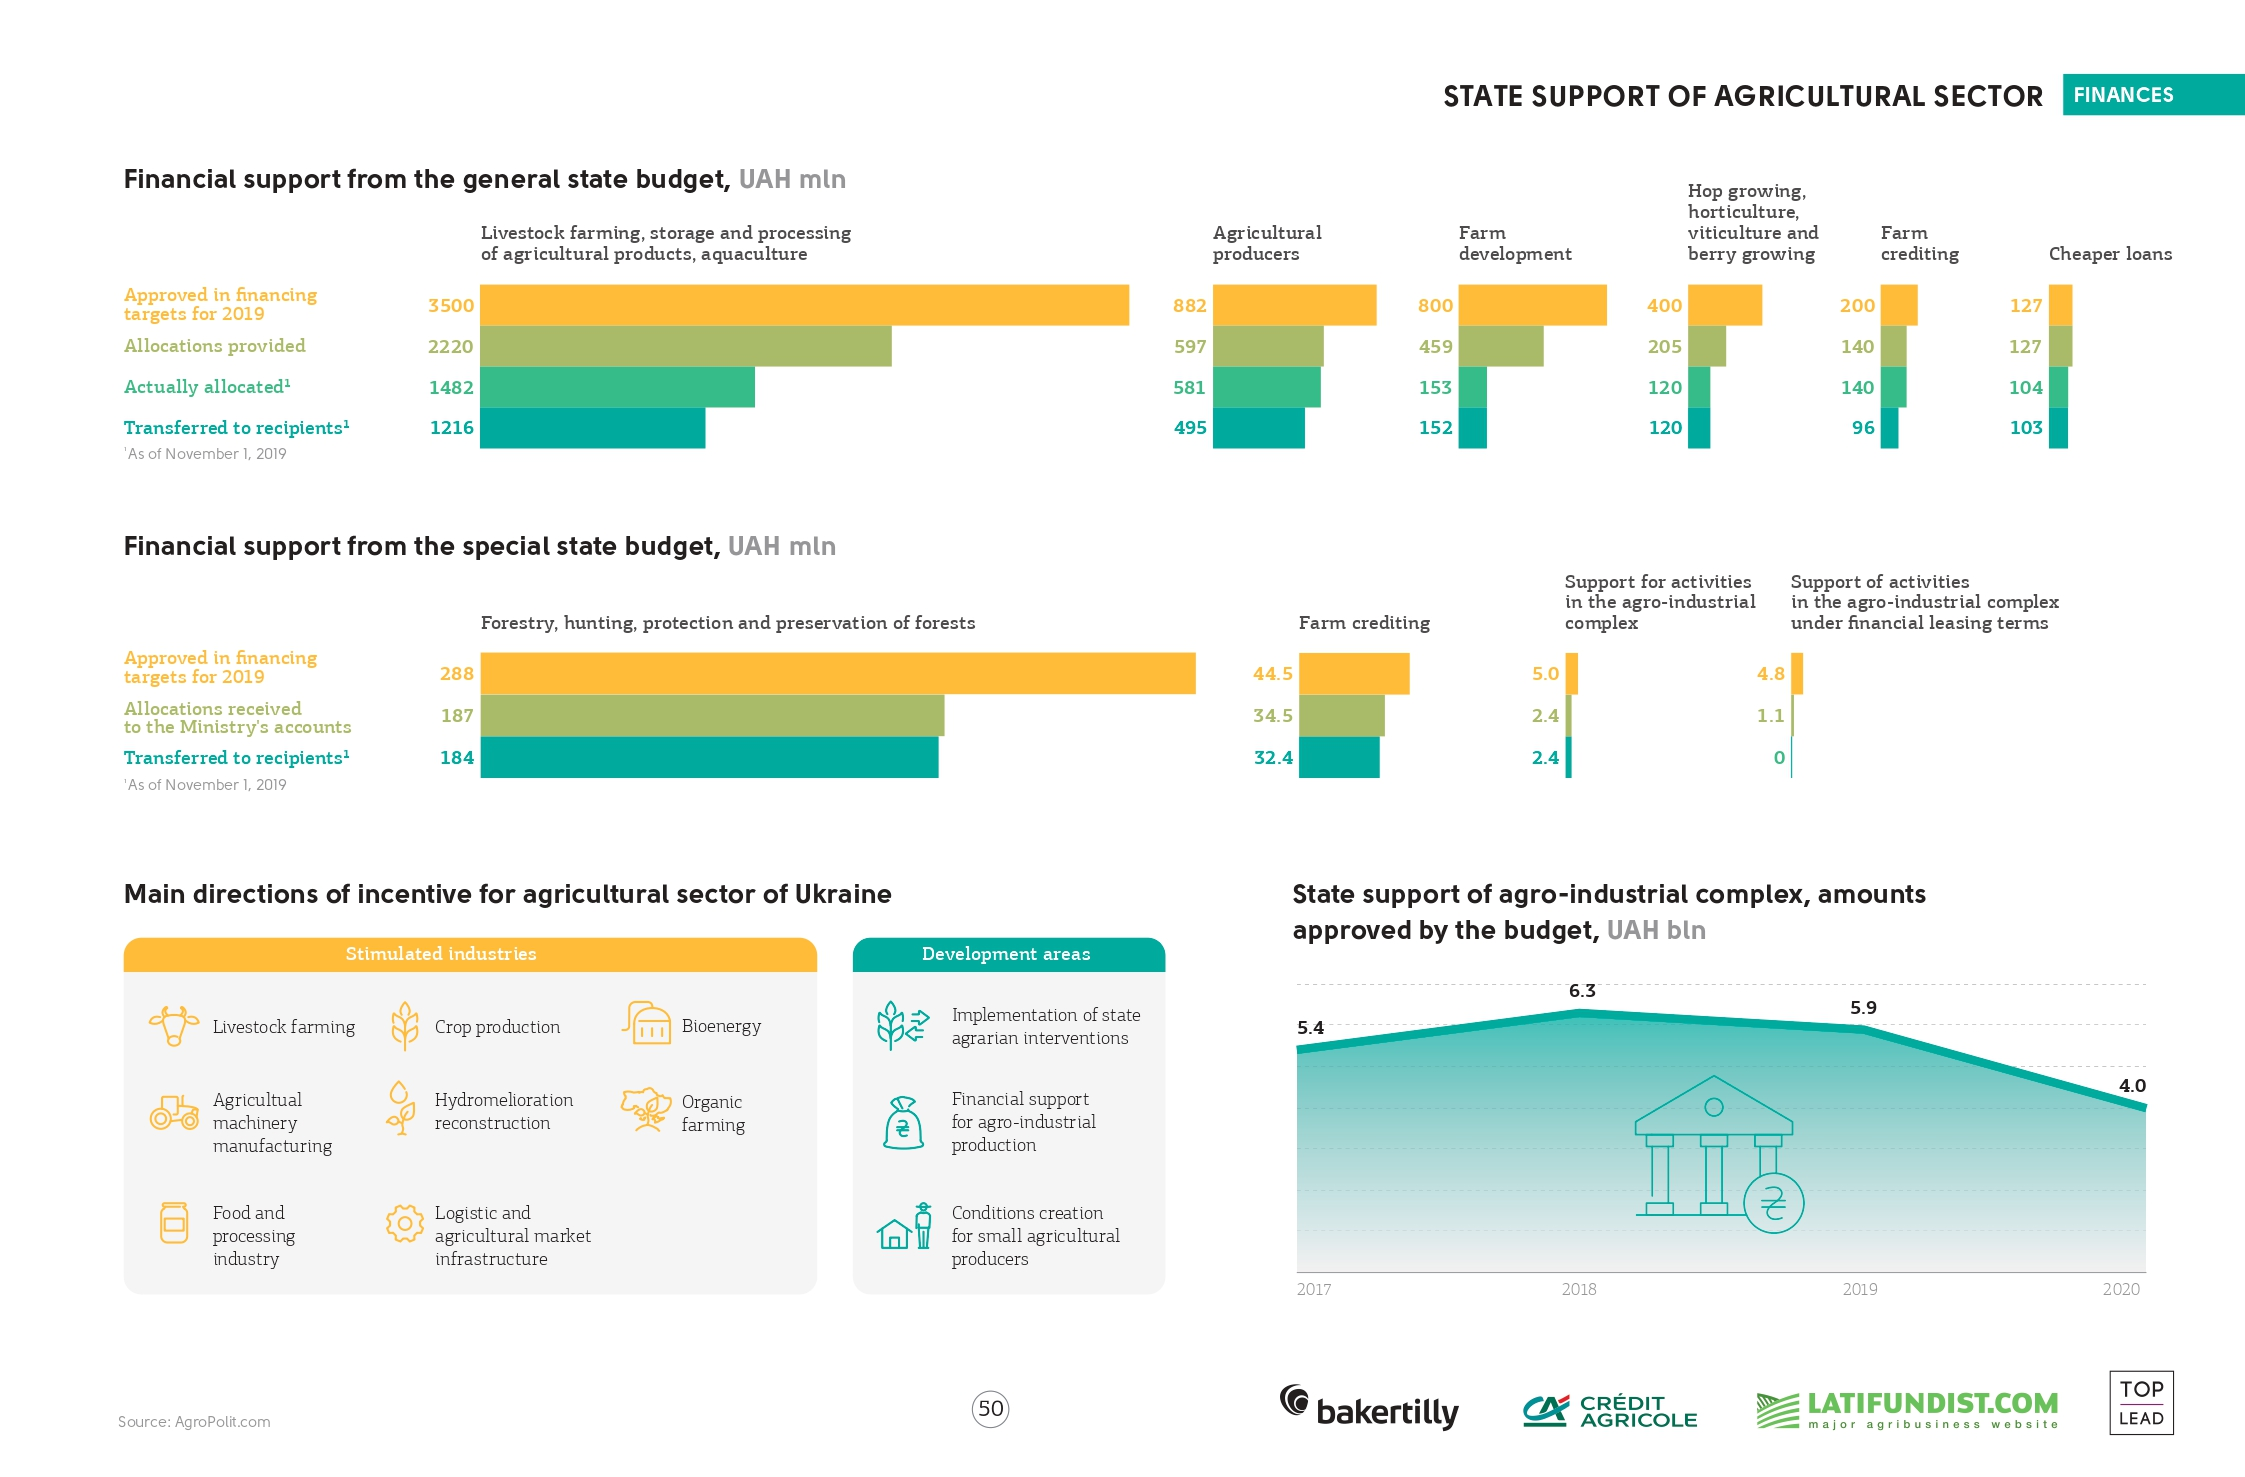 State support of agricultural sector in Ukraine (click for full resolution)